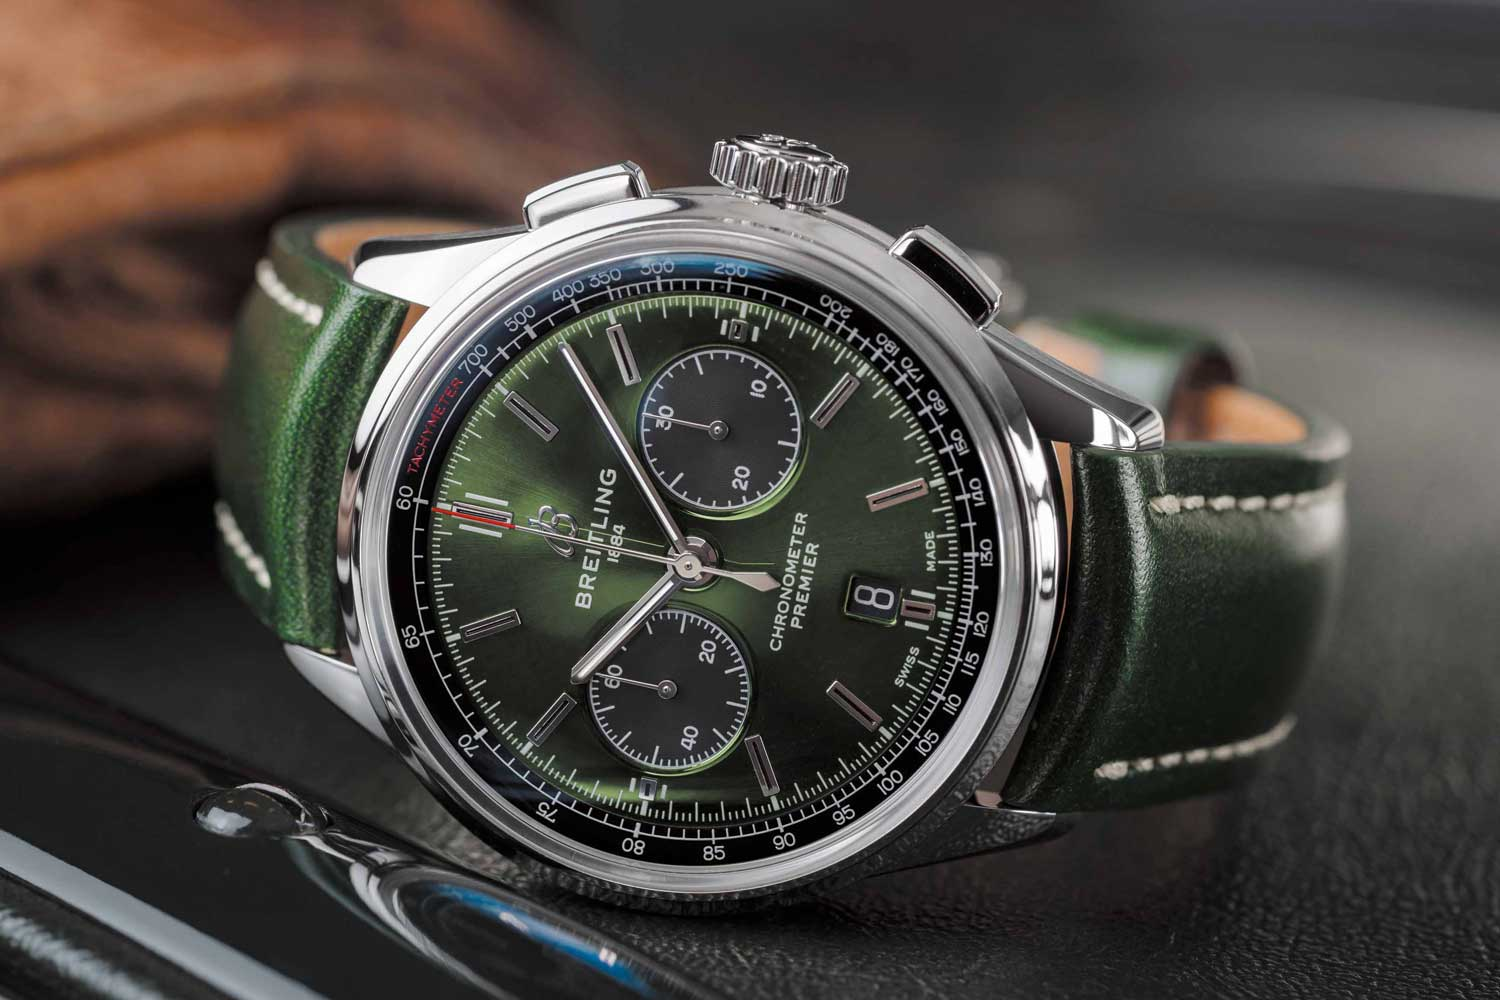 B01 Chronograph 42 Bentley British Racing Green with British racing green leather strap